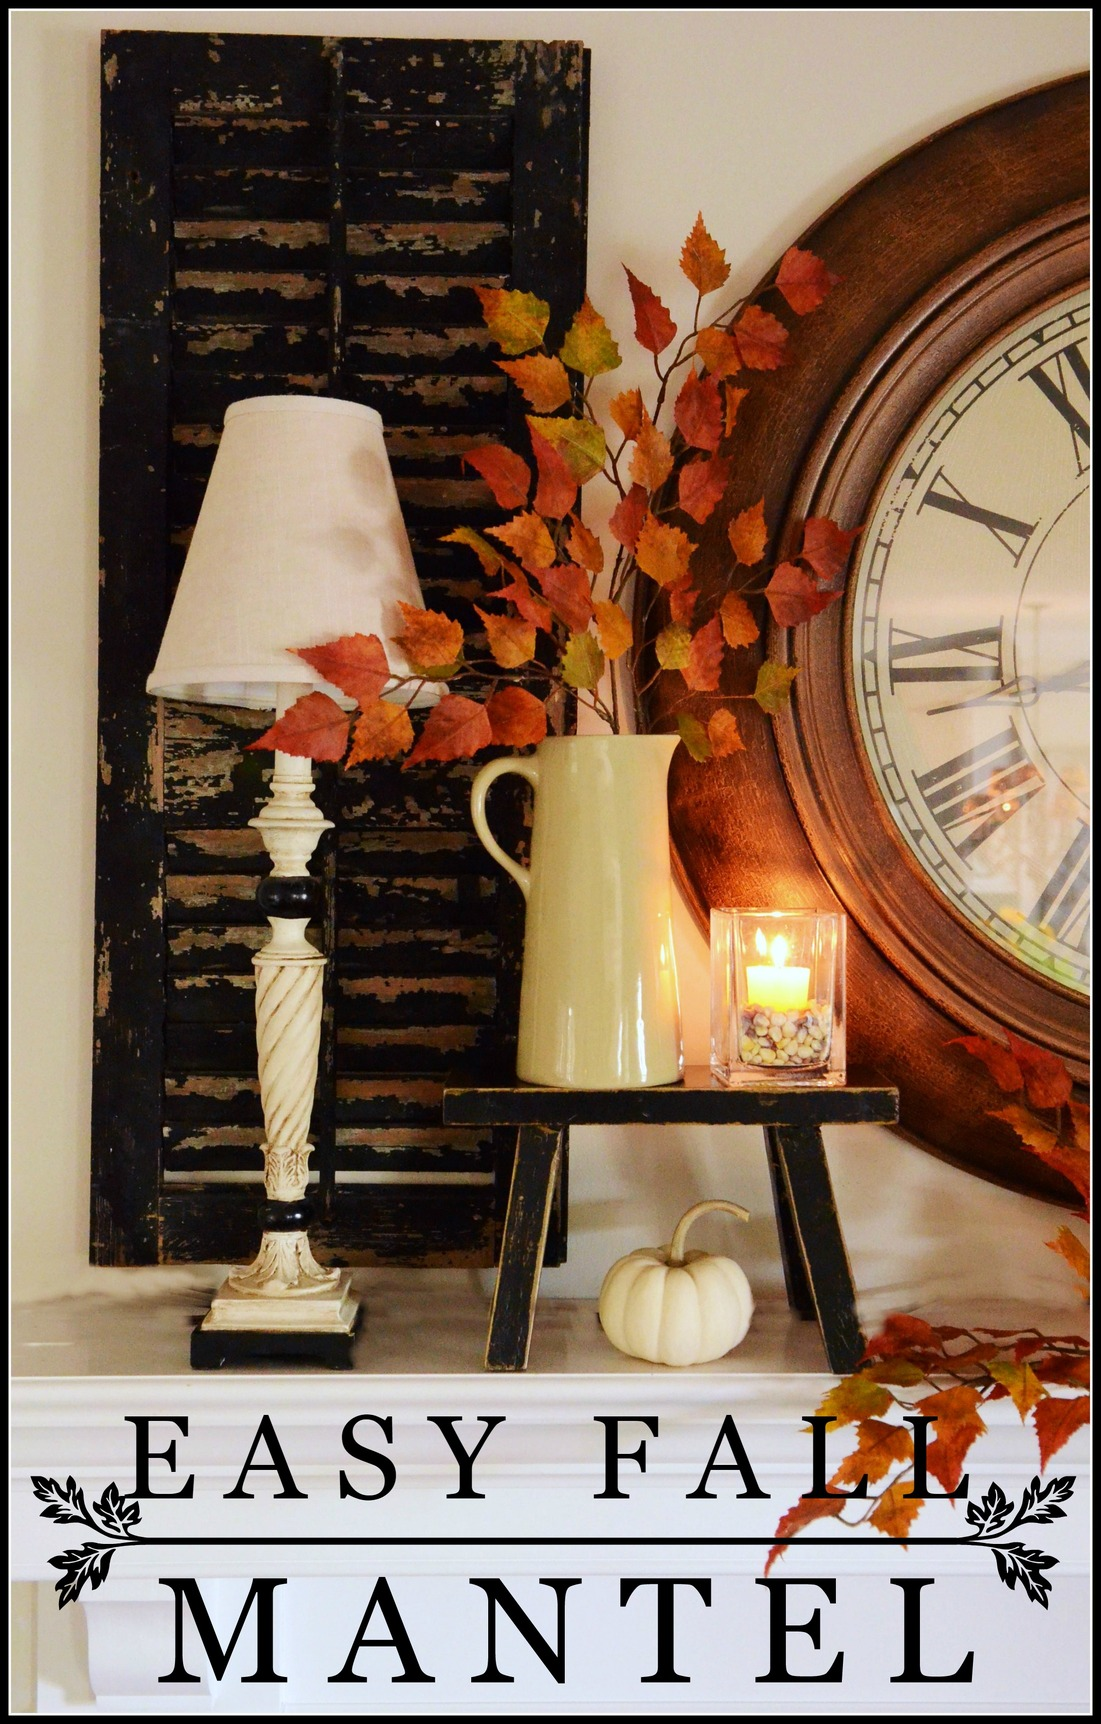 Easy Fall Kids Crafts That Anyone Can Make: EASY FALL MANTEL